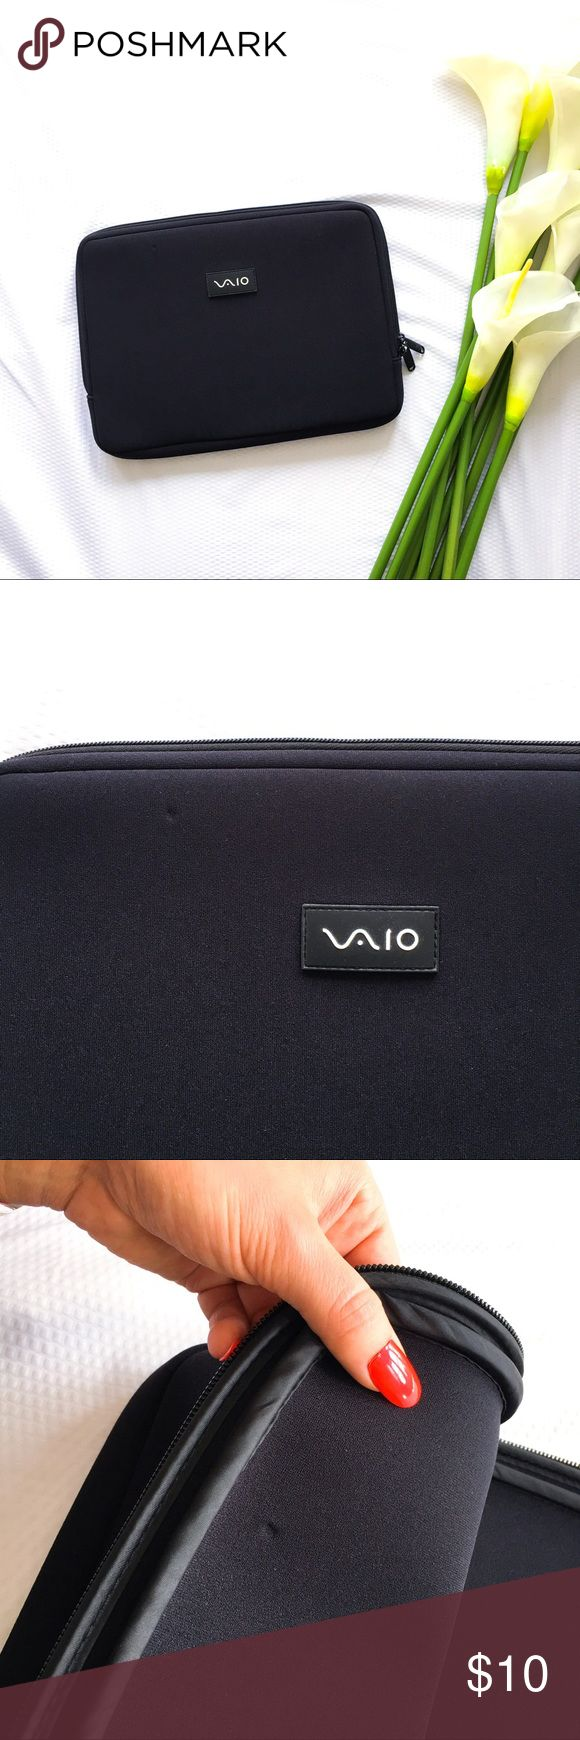 VAIO neoprene laptop sleeve Cooommmmmputerylaptopy sleevey thingies. Laptop zippered sleeve? I'm no good with the technologies. All I know - this is good to have to help out your investment. Good condition - a couple dents (as pictured). Sony Accessories Laptop Cases